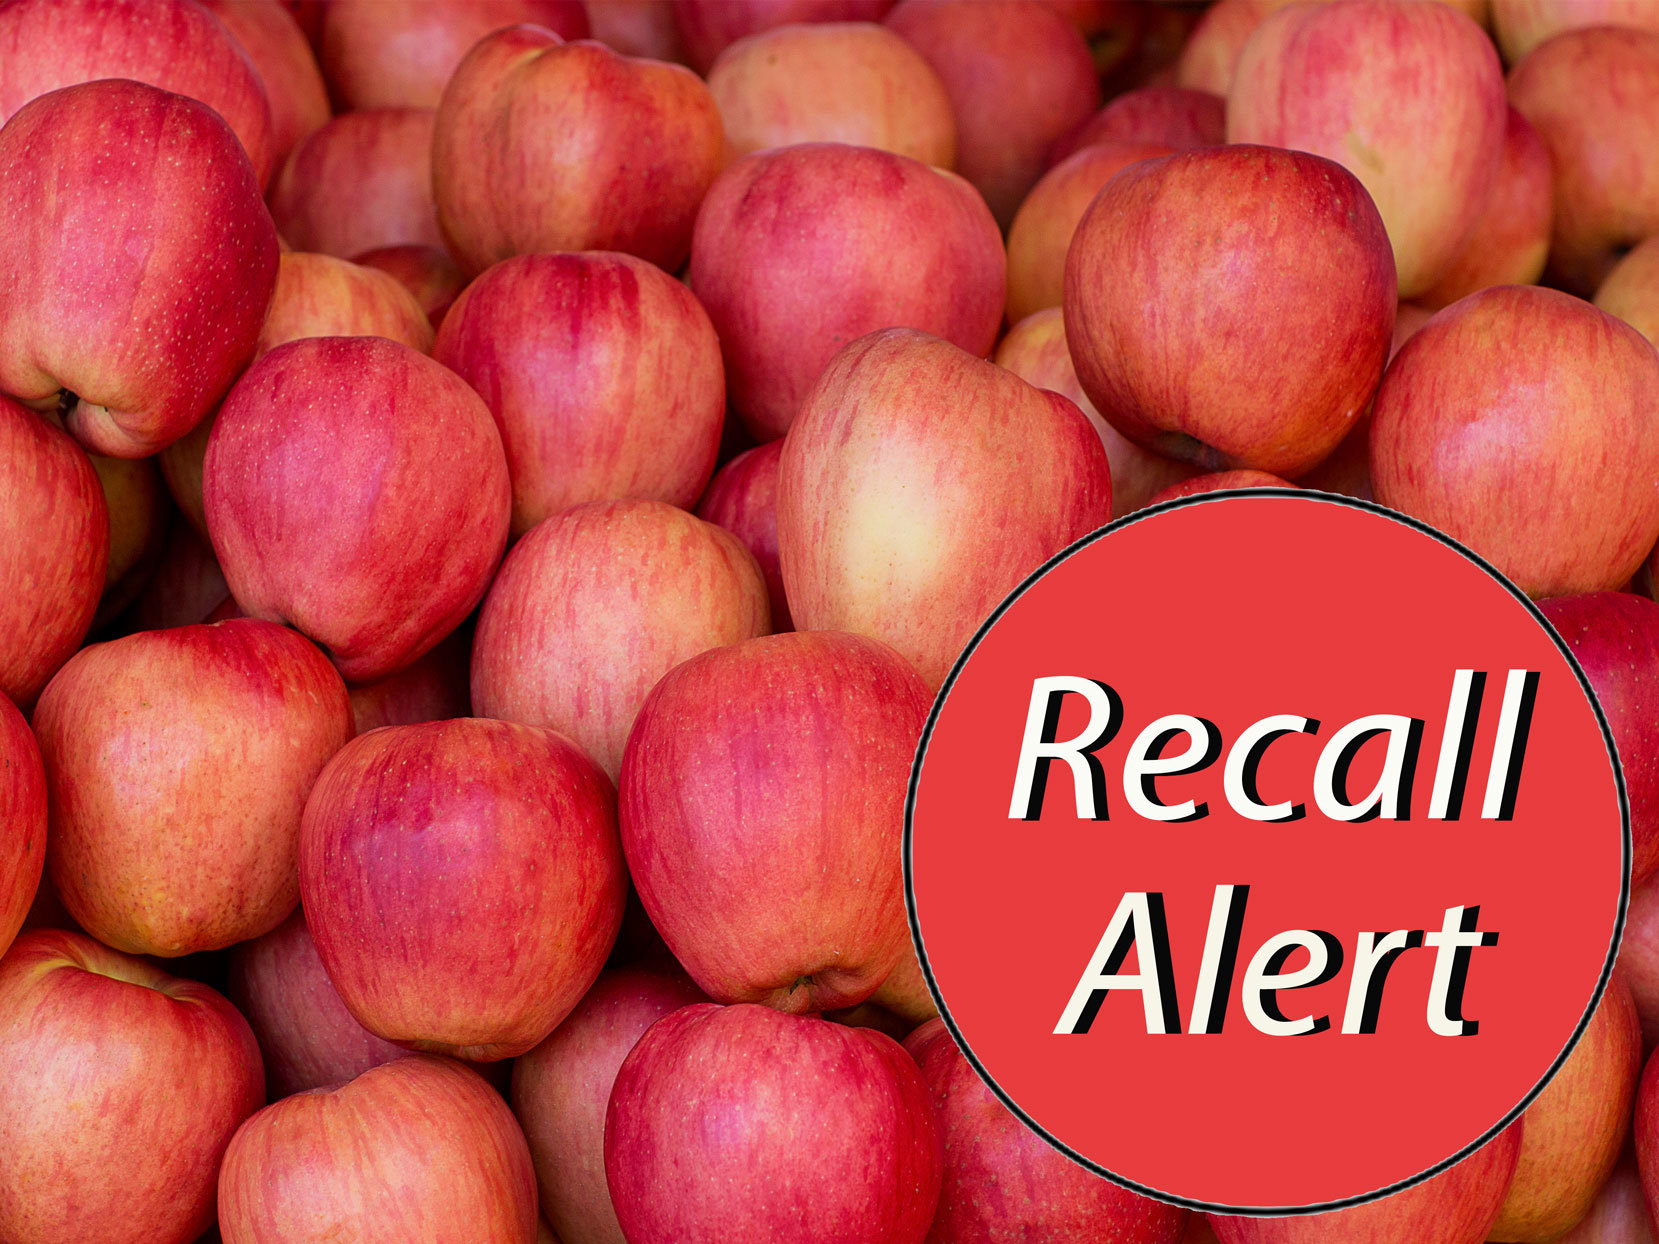 pile of apples with recall alert sticker